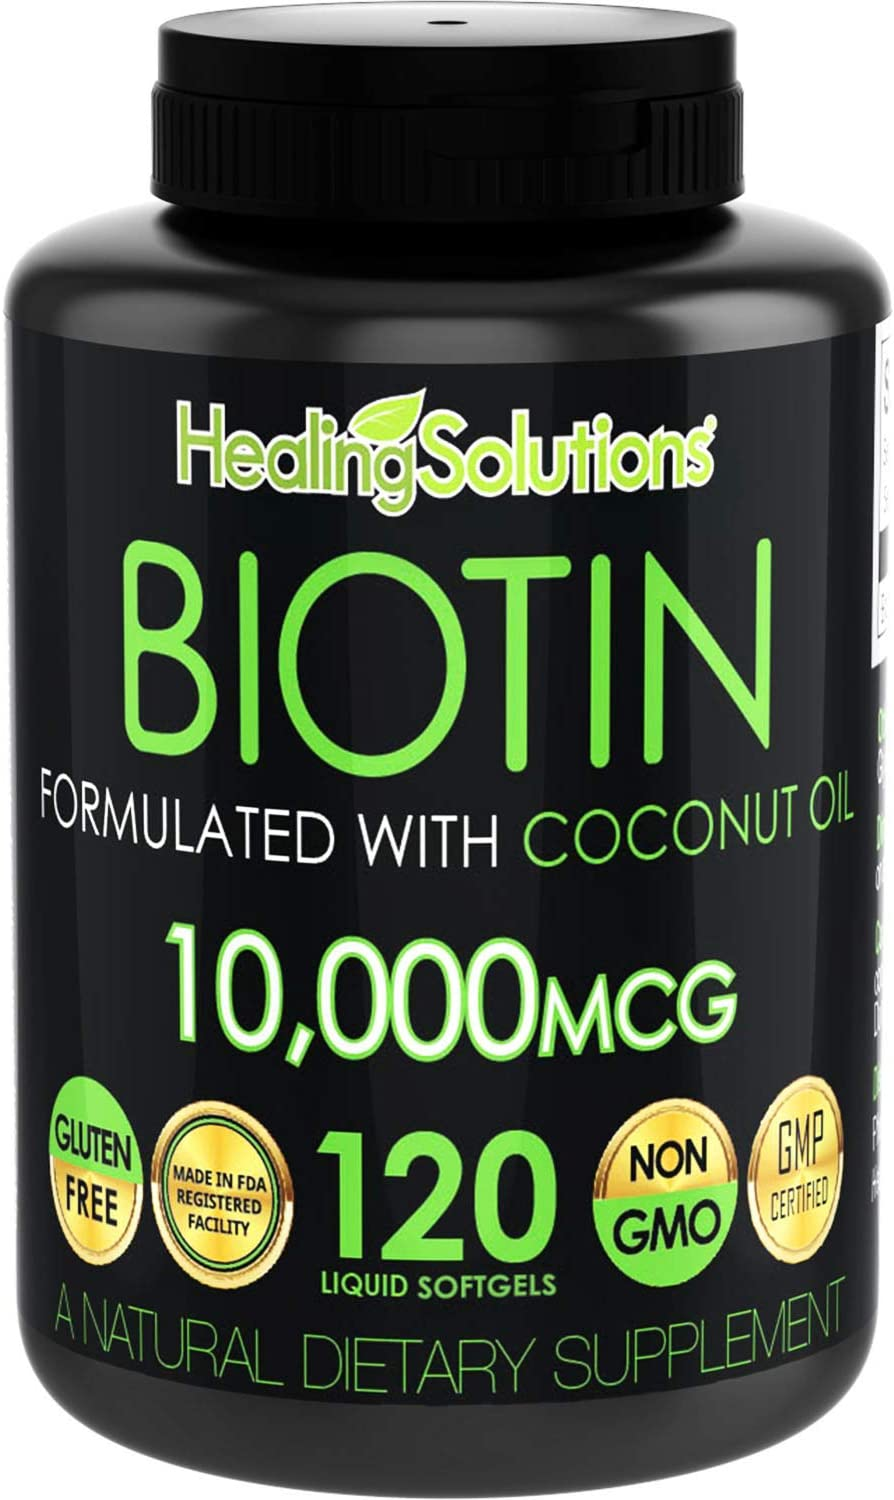 Biotin 10,000mcg (Vitamin B7 - 120 Pills) Hair Growth Vitamins with Coconut Oil – Perfect Nail Skin Softgels Biotin Supplement for Women and Men - Incredibly High Potency Capsules